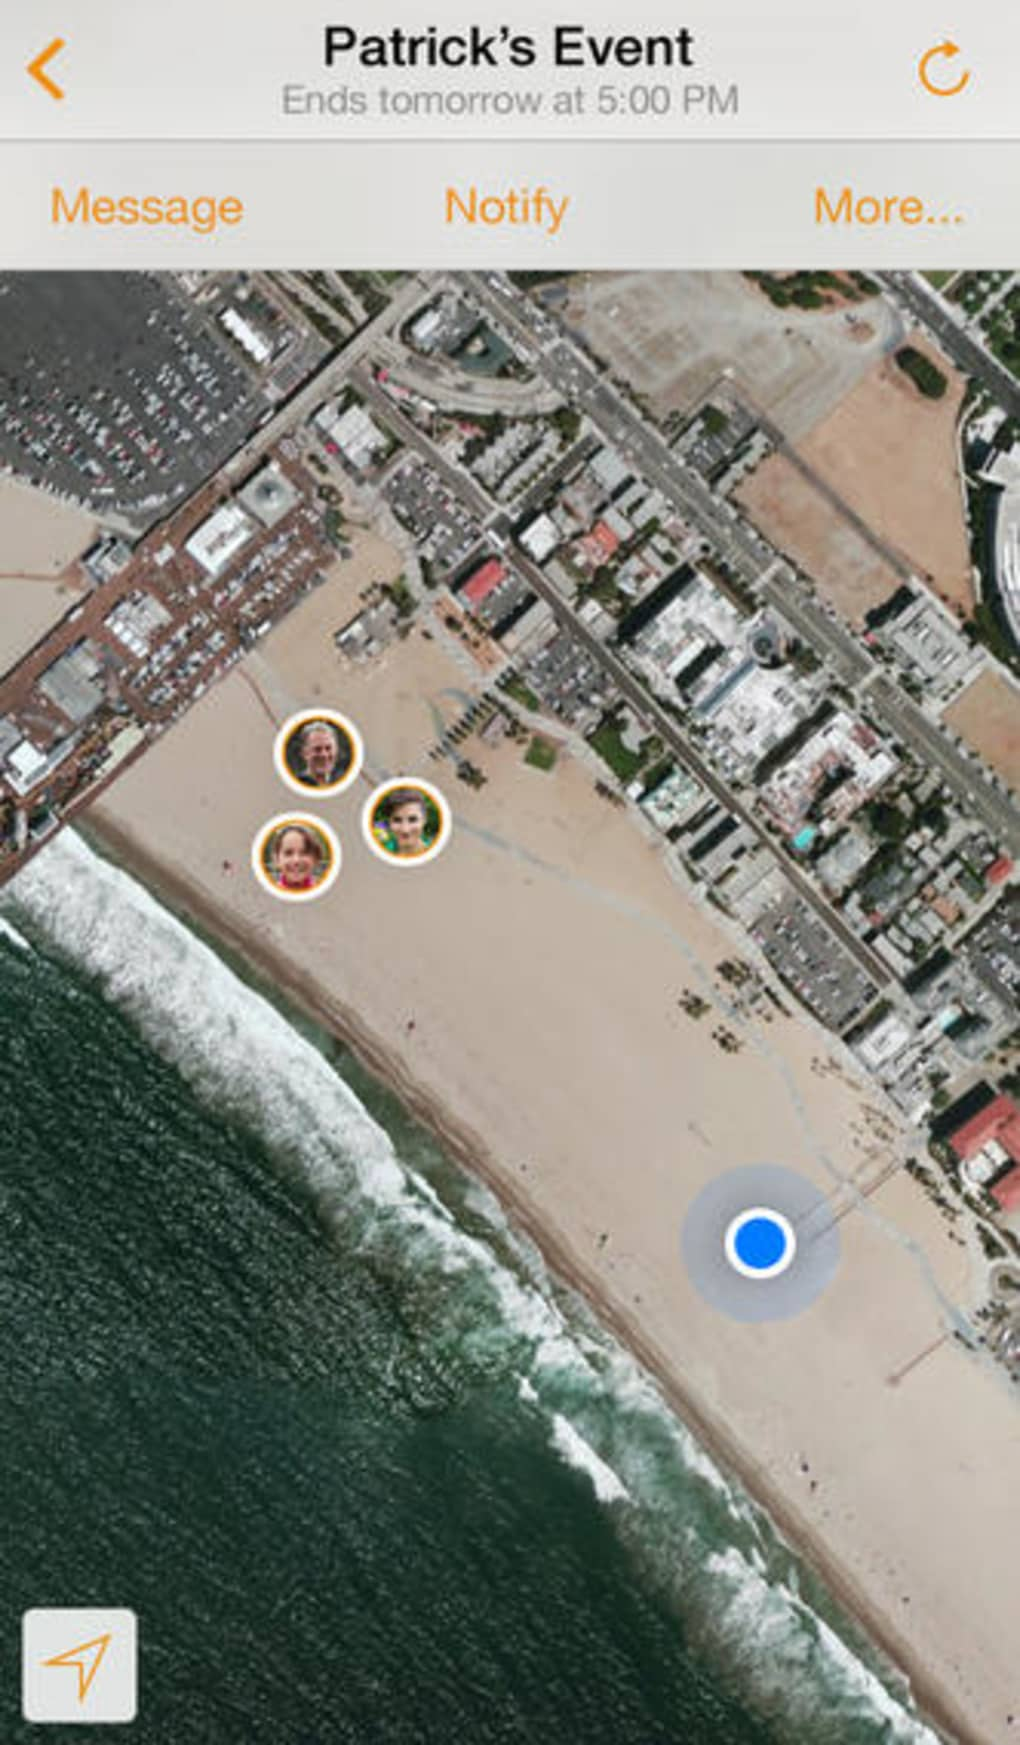 Find My Friends for iPhone - Download